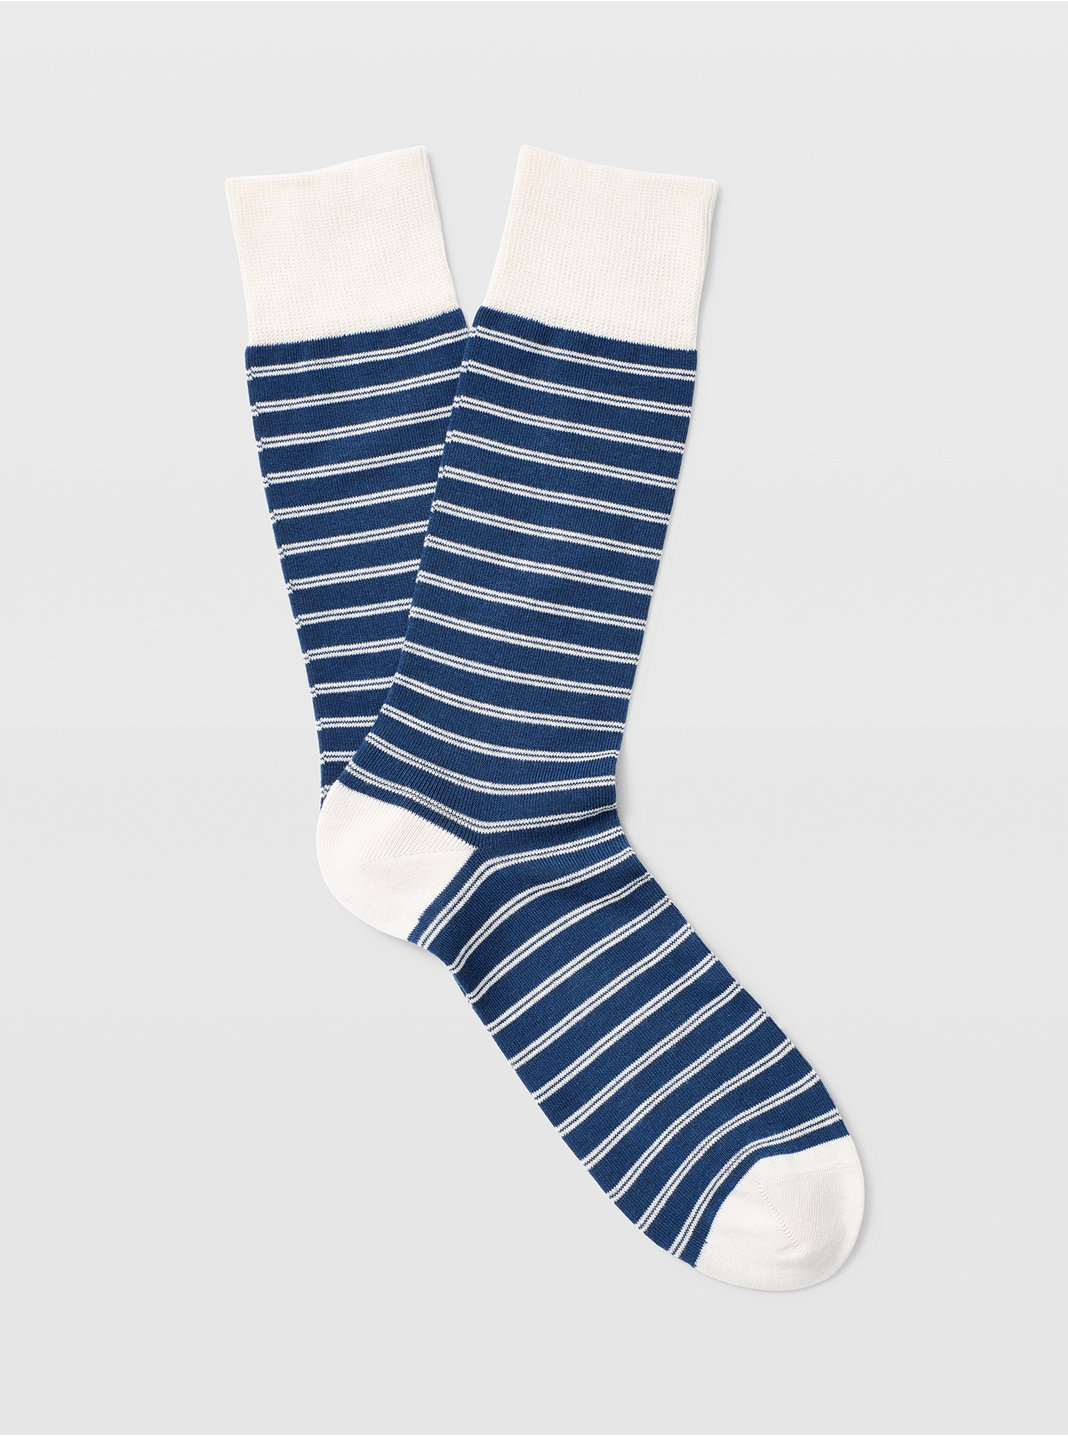 클럽 모나코 양말 Club Monaco Double Striped Sock,Blue/White